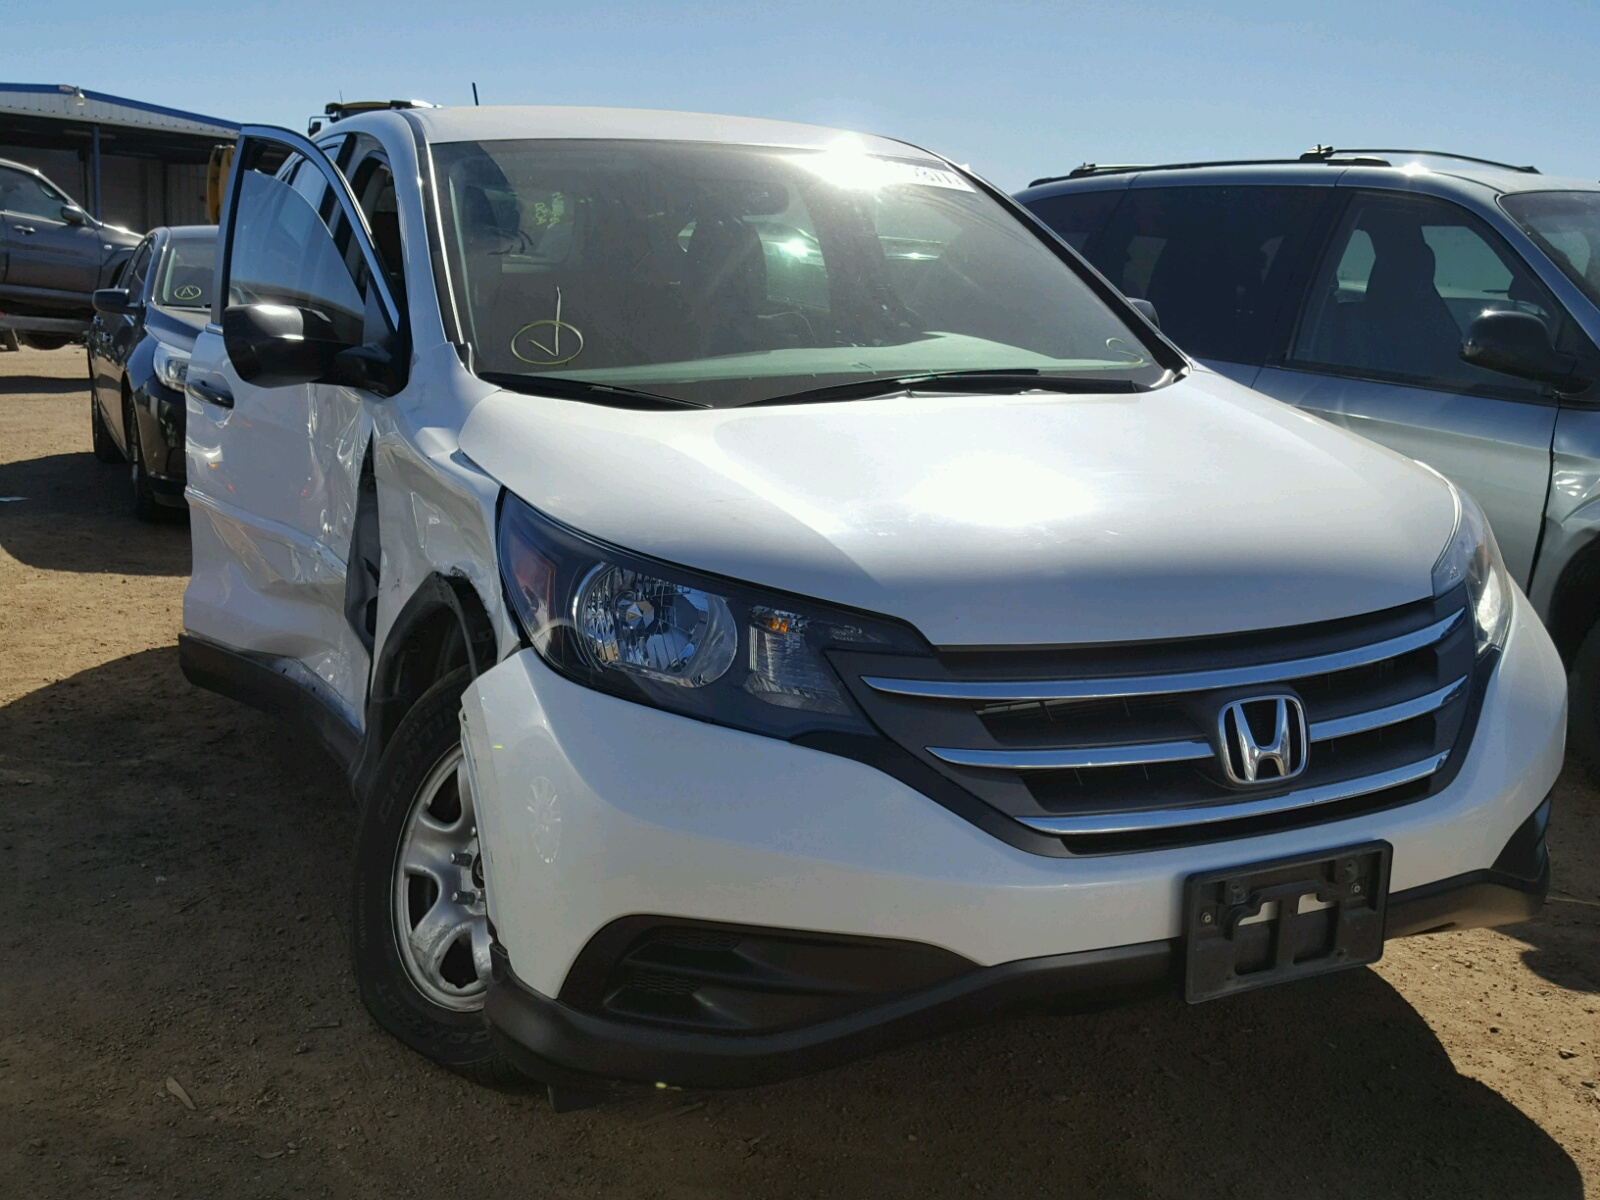 Honda Springfield Pa >> Auto Auction Ended on VIN: 5FNRL5H4XFB021449 2015 HONDA ODYSSEY in TX - HOUSTON